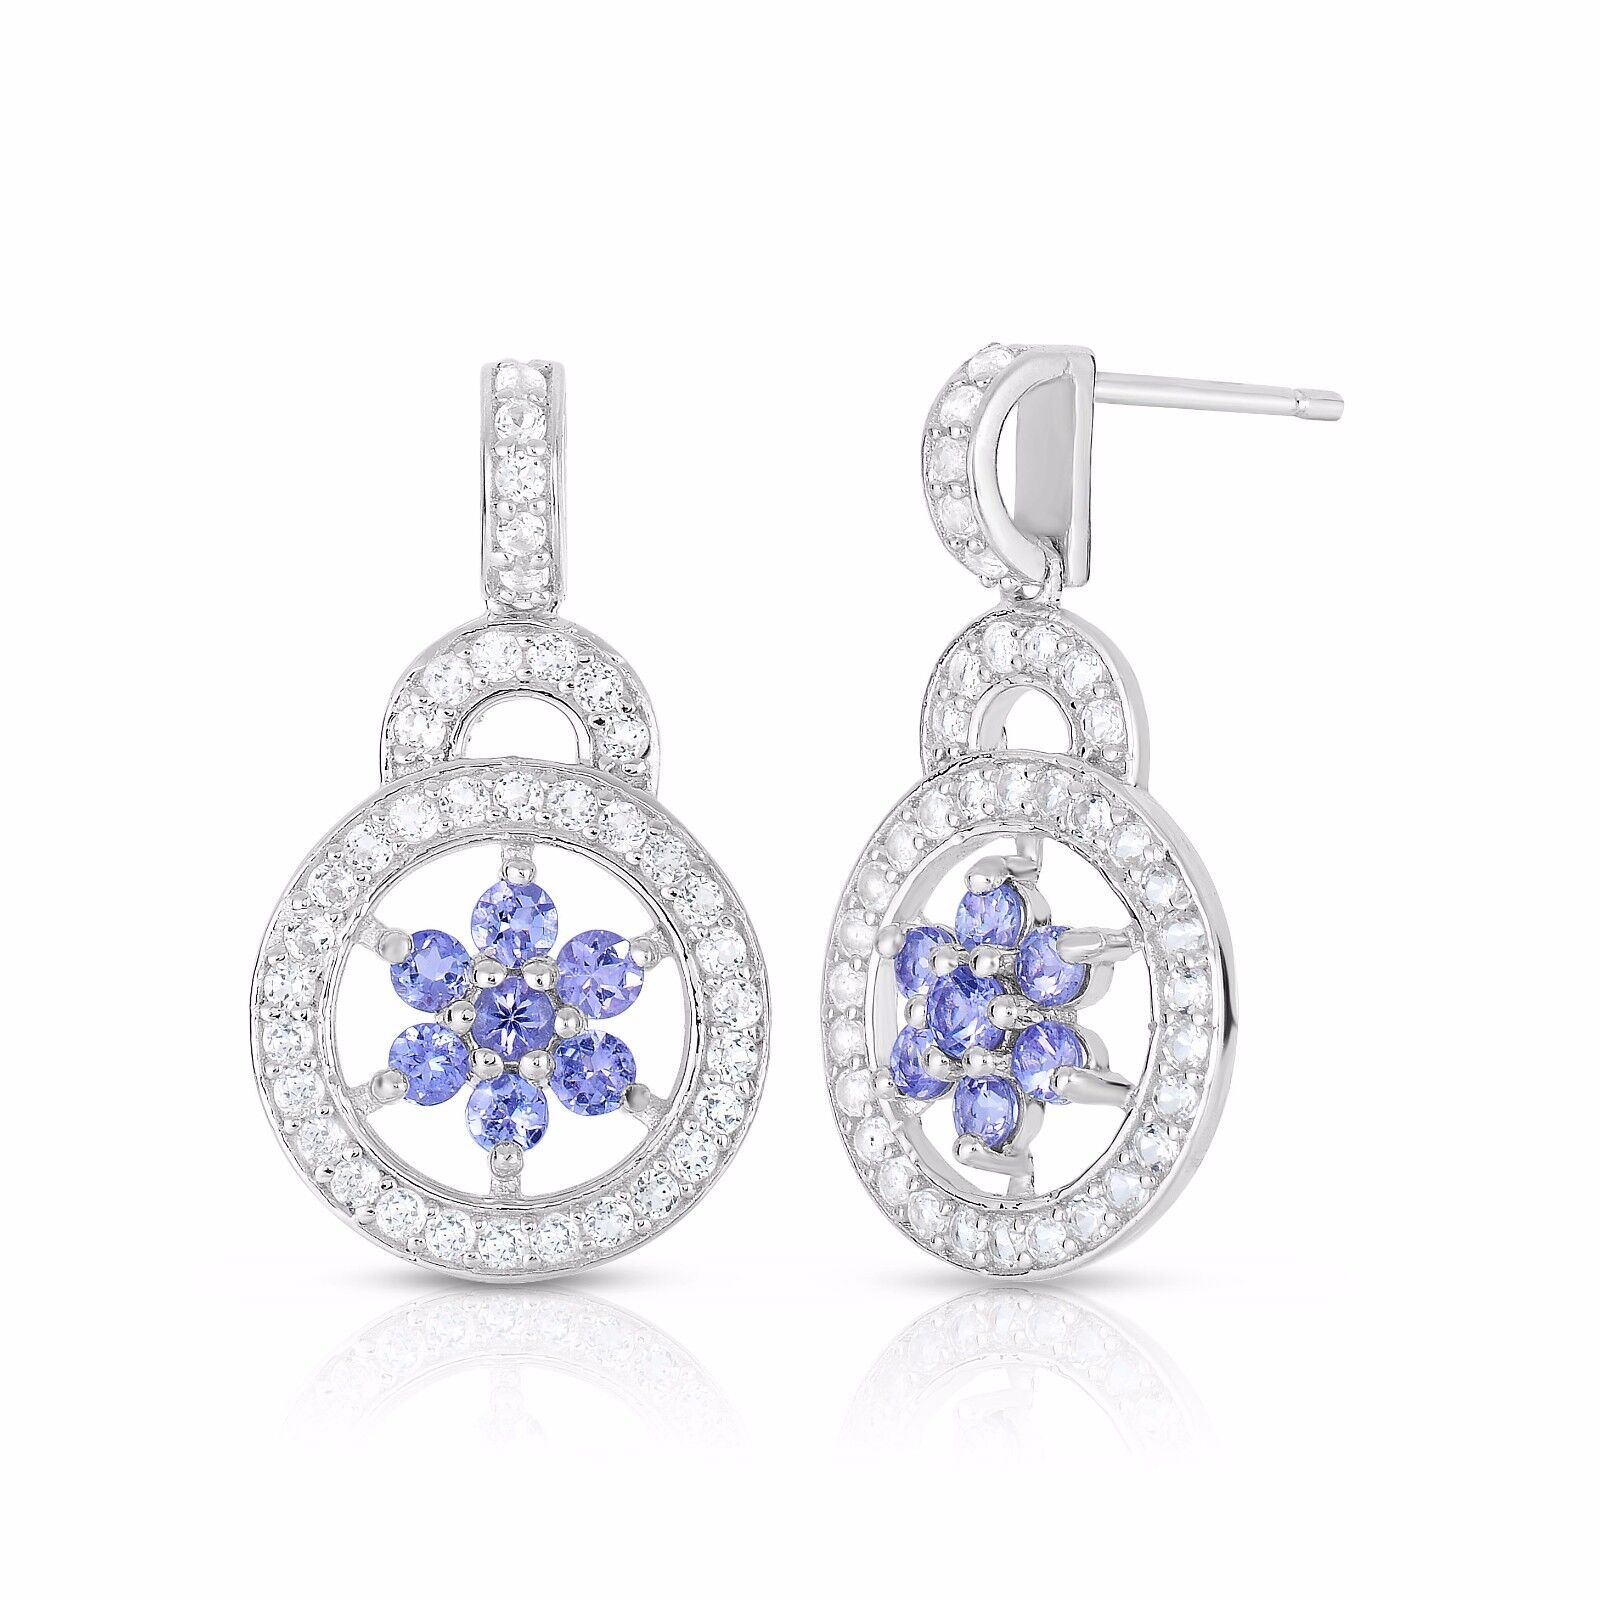 Details About Natalia Drake Sterling Silver 1 86 Cttw Tanzanite White Topaz Earring